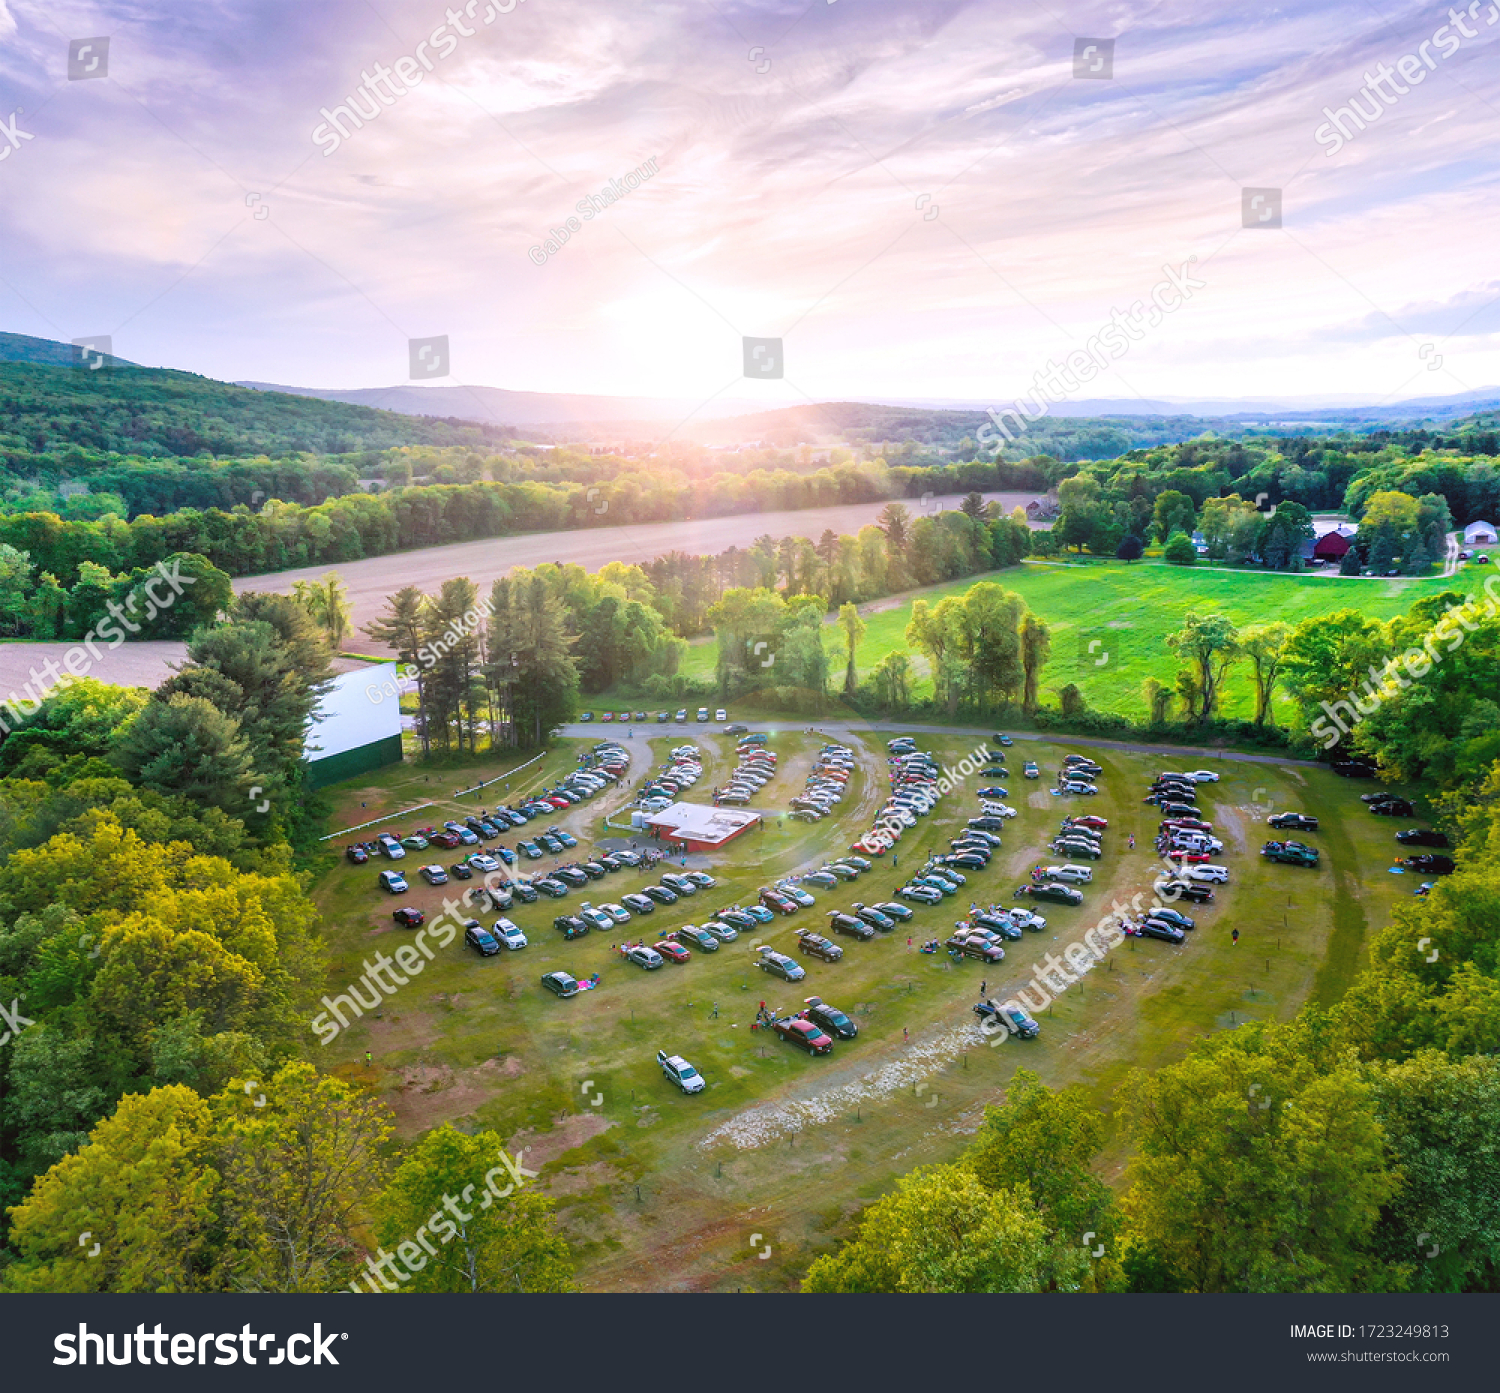 Aerial photo of beautiful outdoor country drive-in movie theater at sunset. Taken at Northfield Drive-In Theater. #1723249813